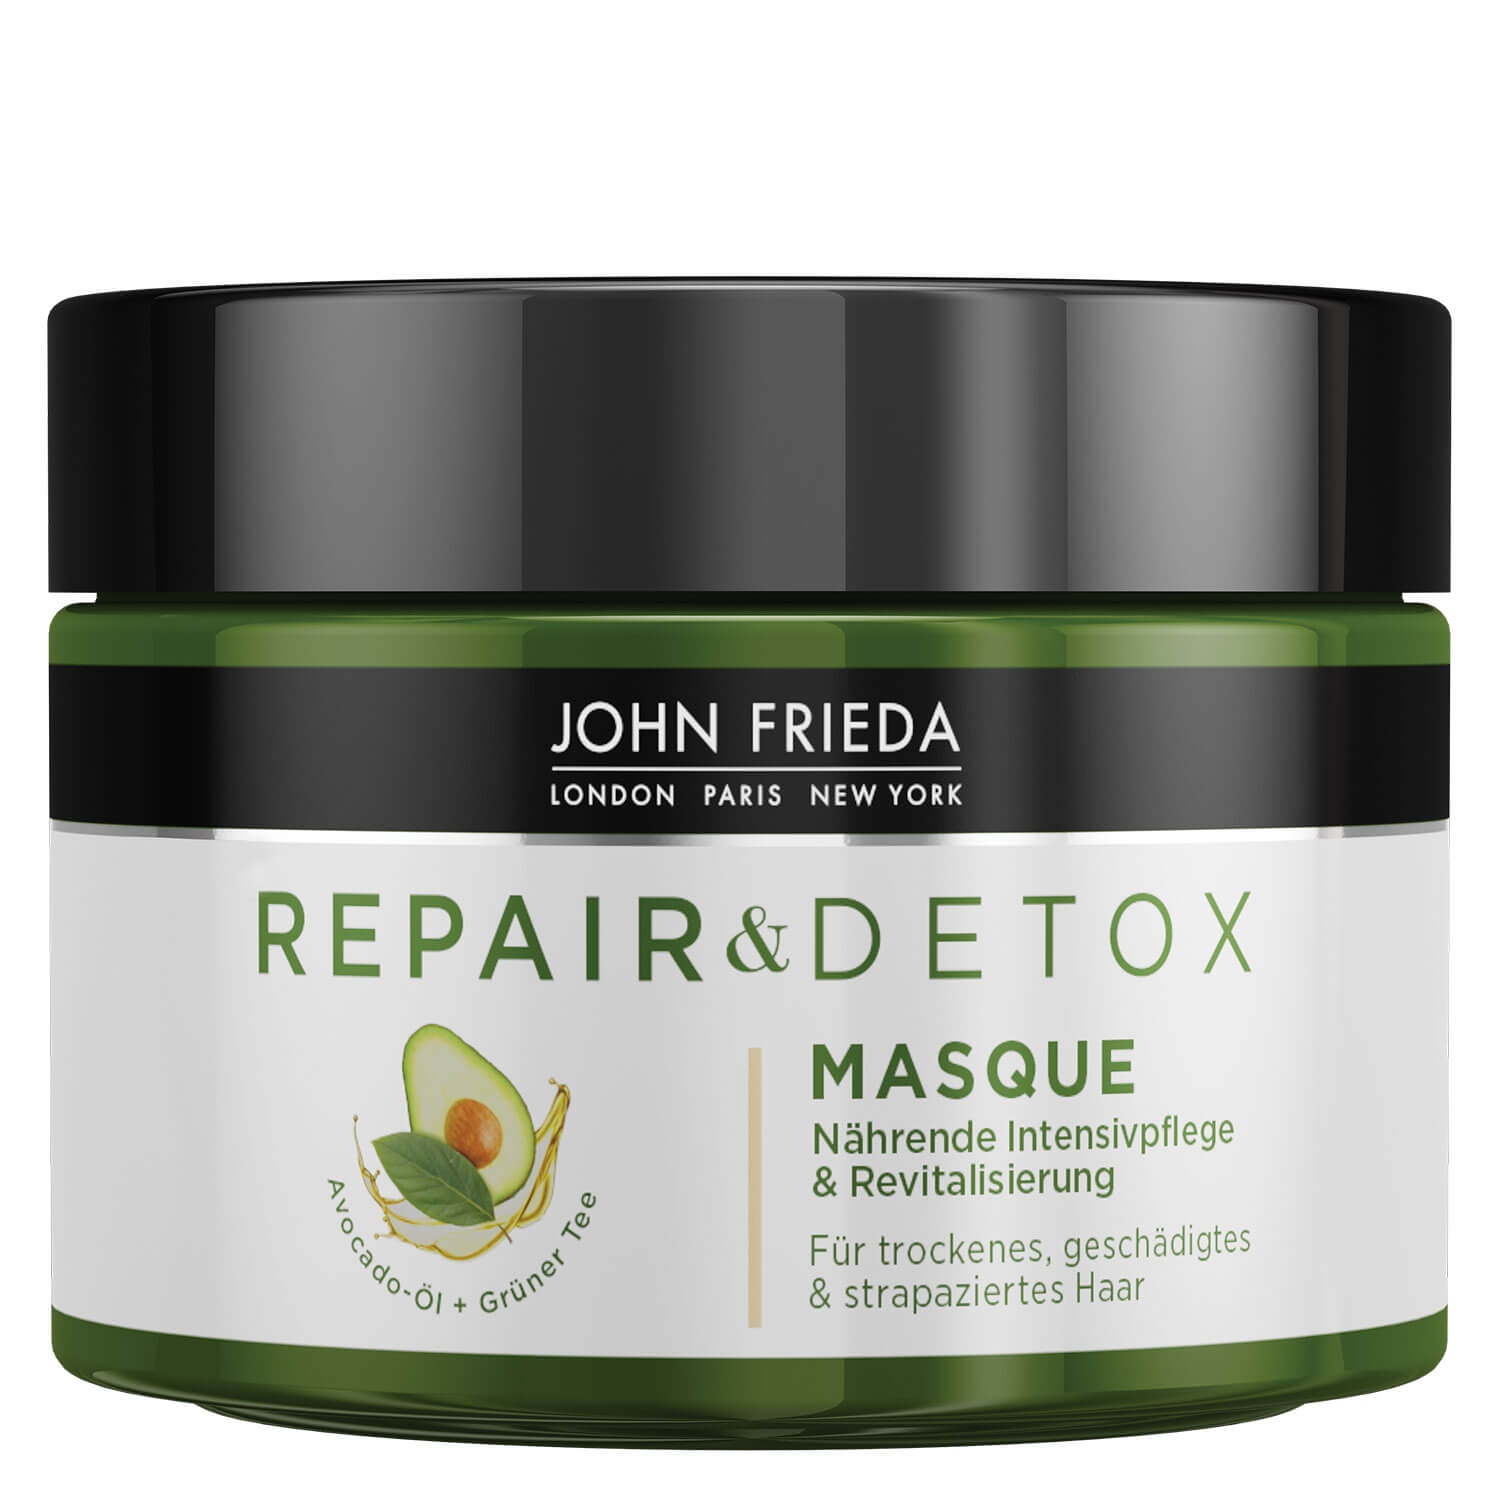 Repair & Detox - Masque - 250ml